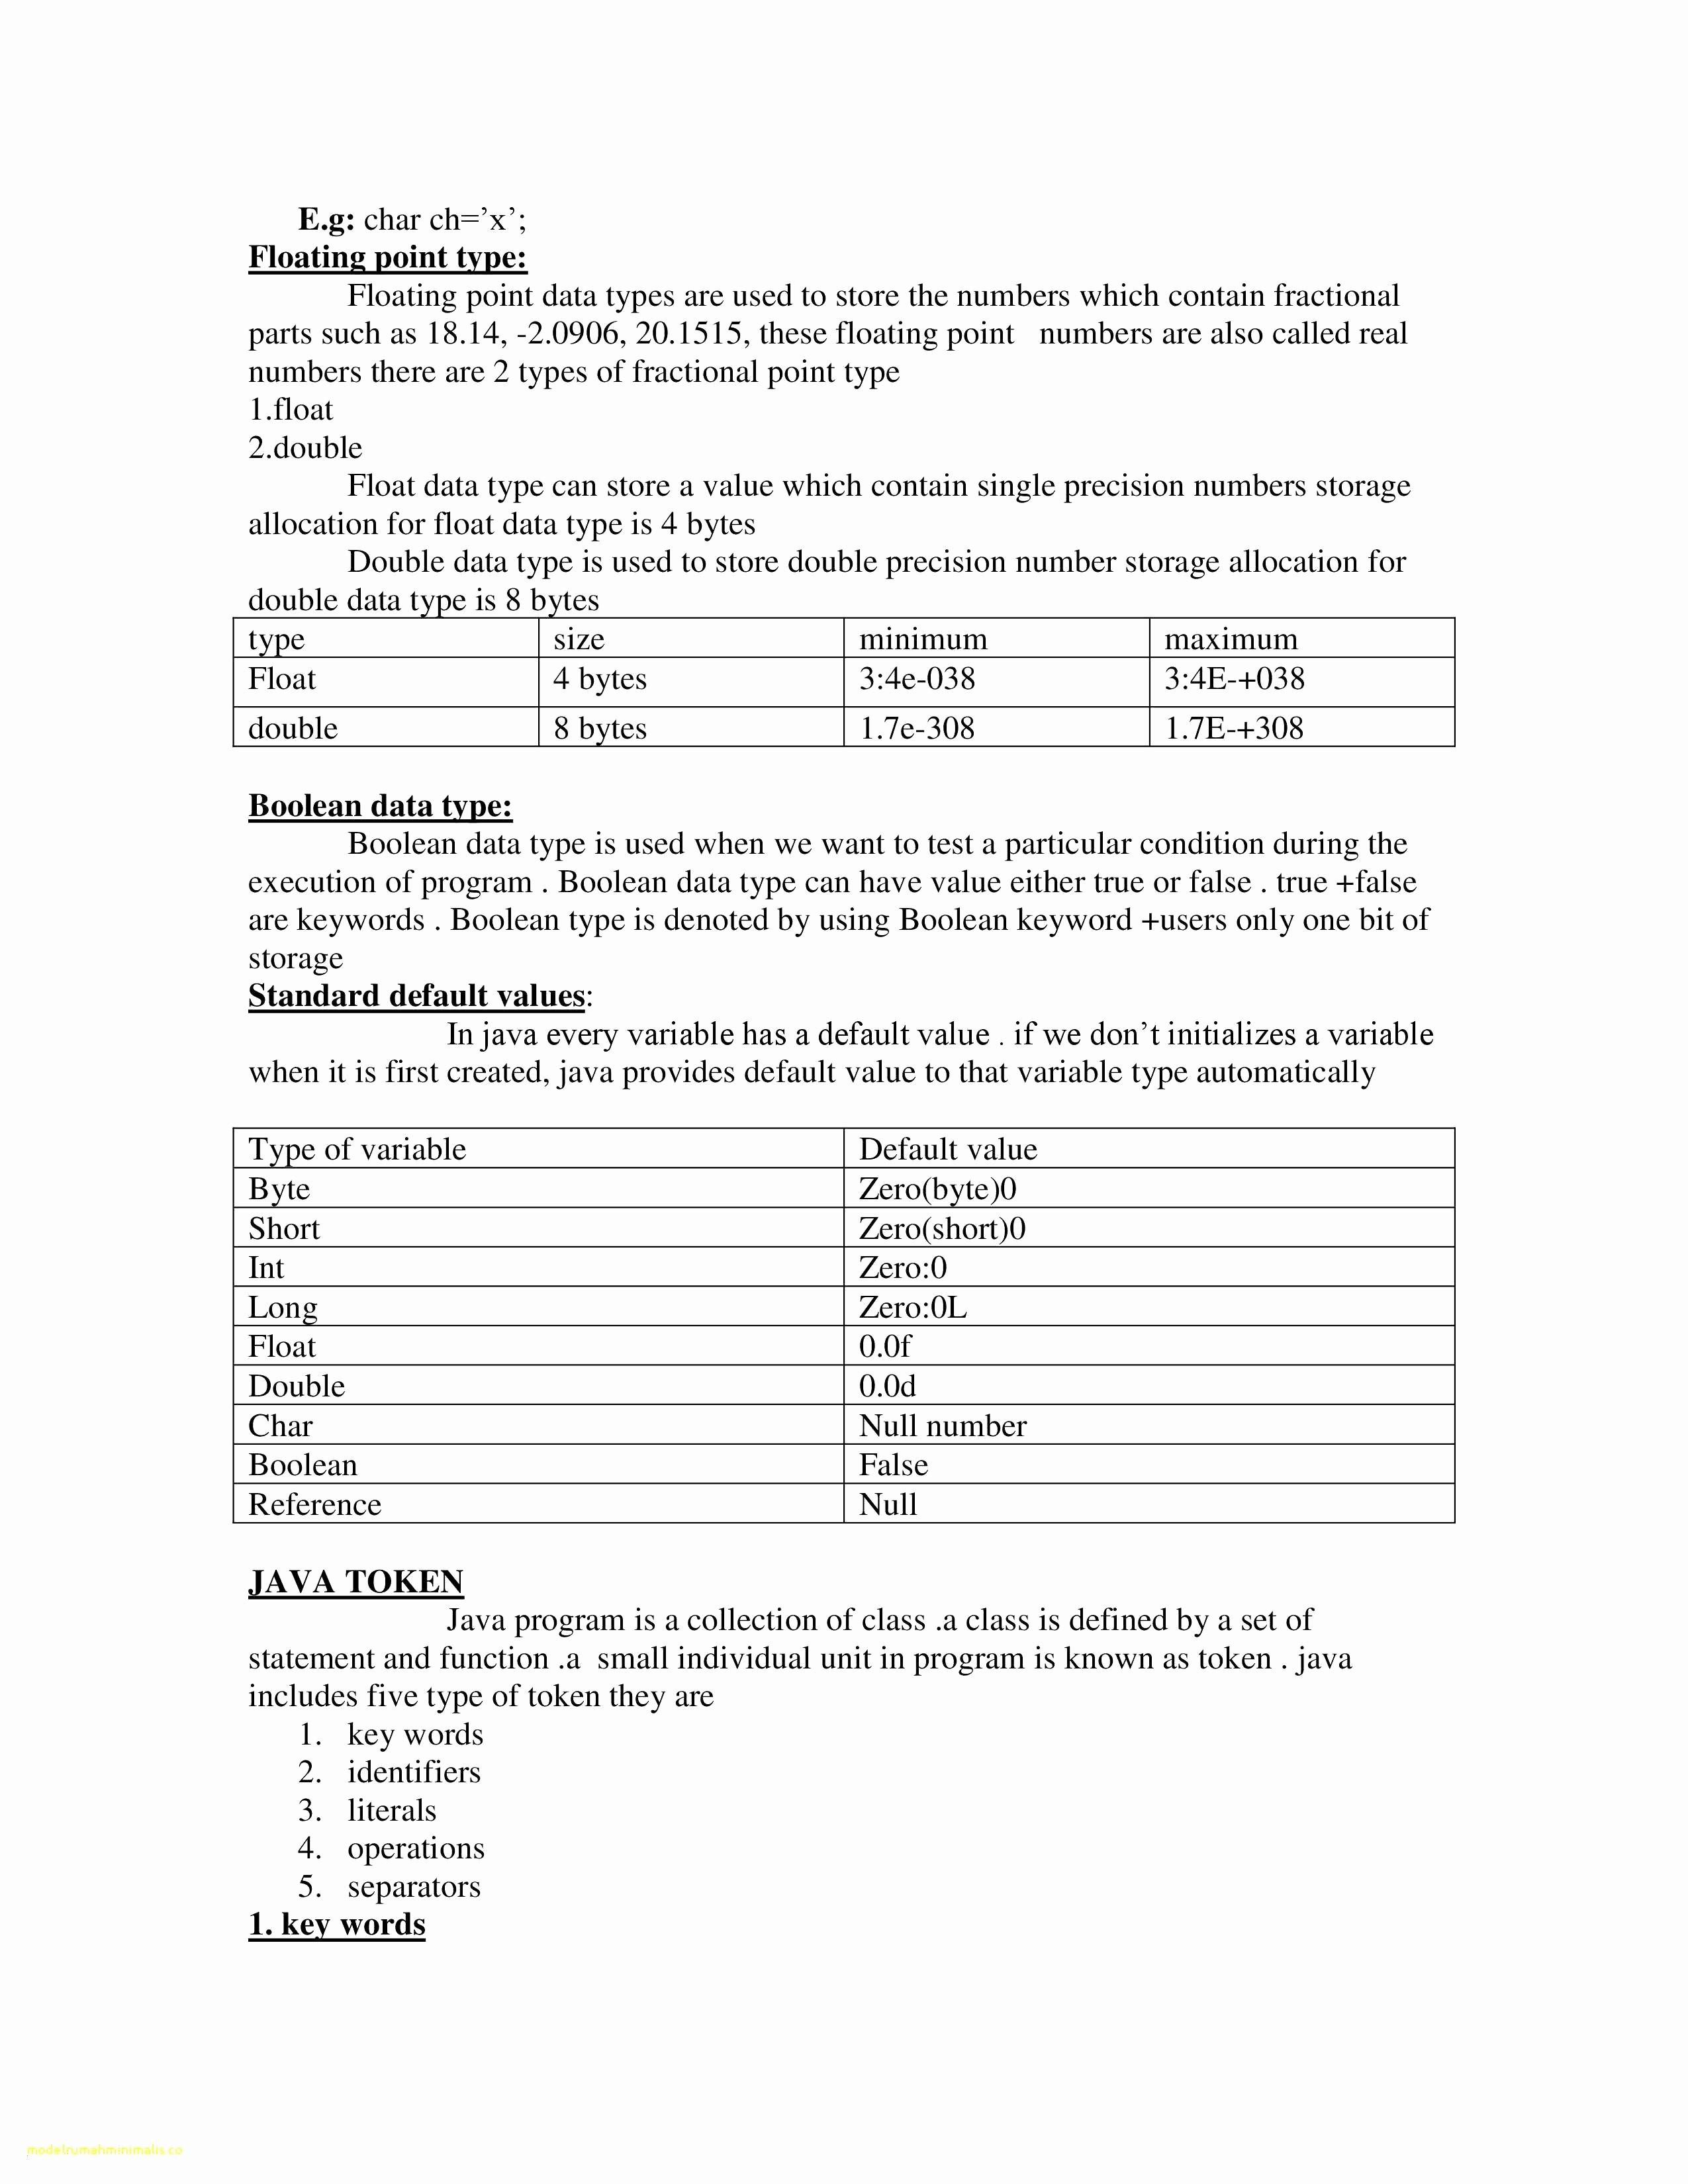 software tester resume sample Collection-Related Post 9-n